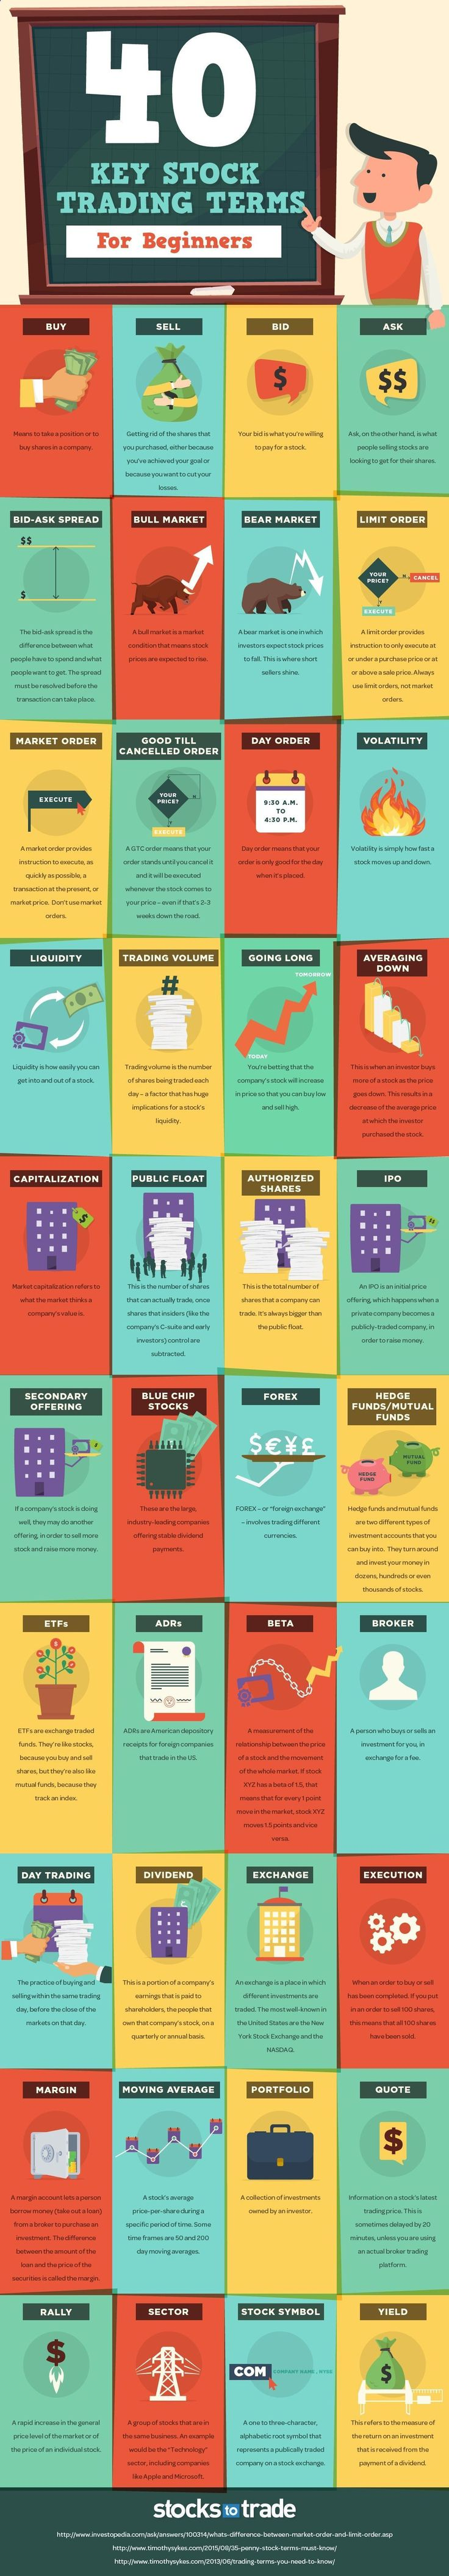 The Stock Market can be an intimidating place, especially if you don't know Stock Market terms frequently used! STT's got your back! Check out this infographic for some quick Stock Market trading terms made specifically for beginners! Have a look! #stockmarketforbeginners #stockmarkettrading